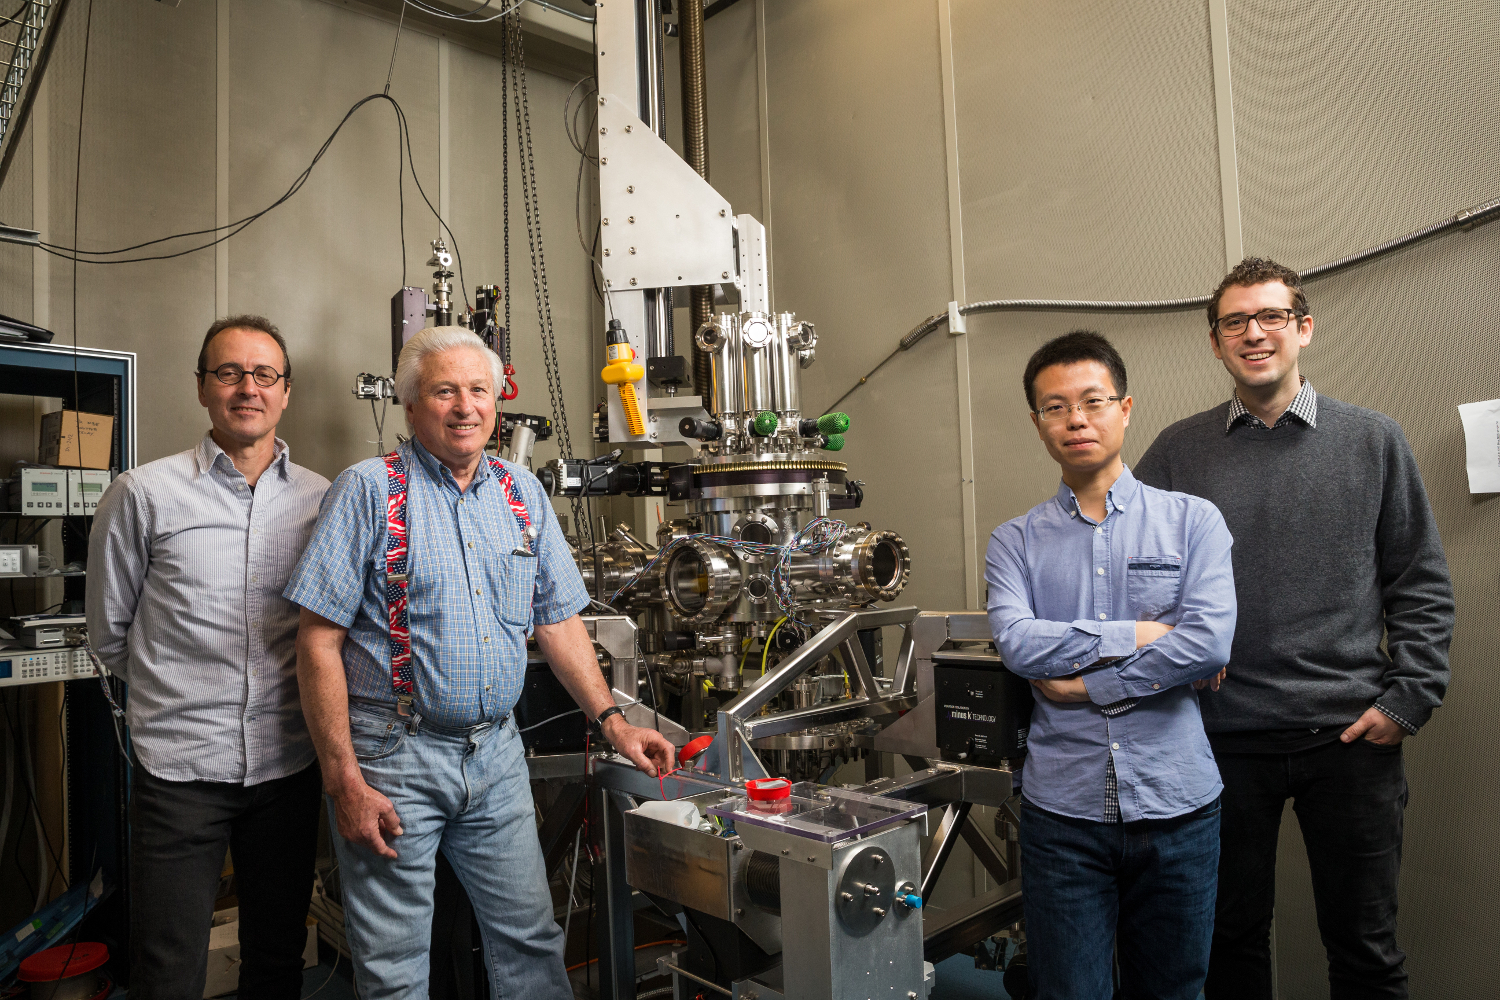 Storing Data in Single-Atom Magnets